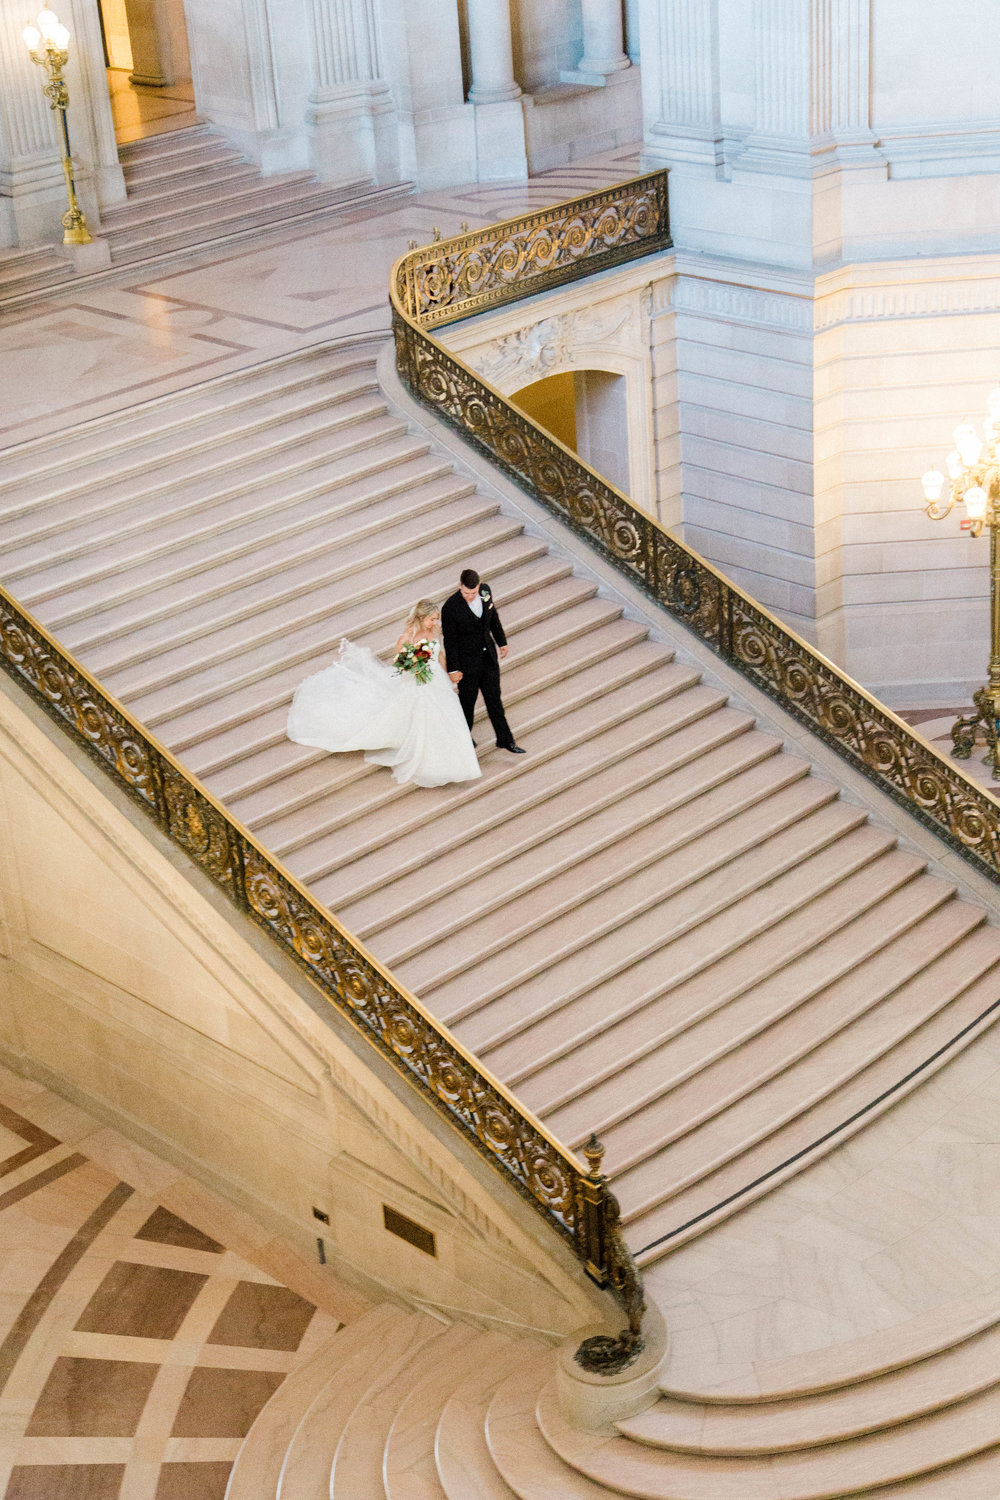 DennisRoyCoronel_Photography_SanFranciscoCityHall_Wedding-97.jpg